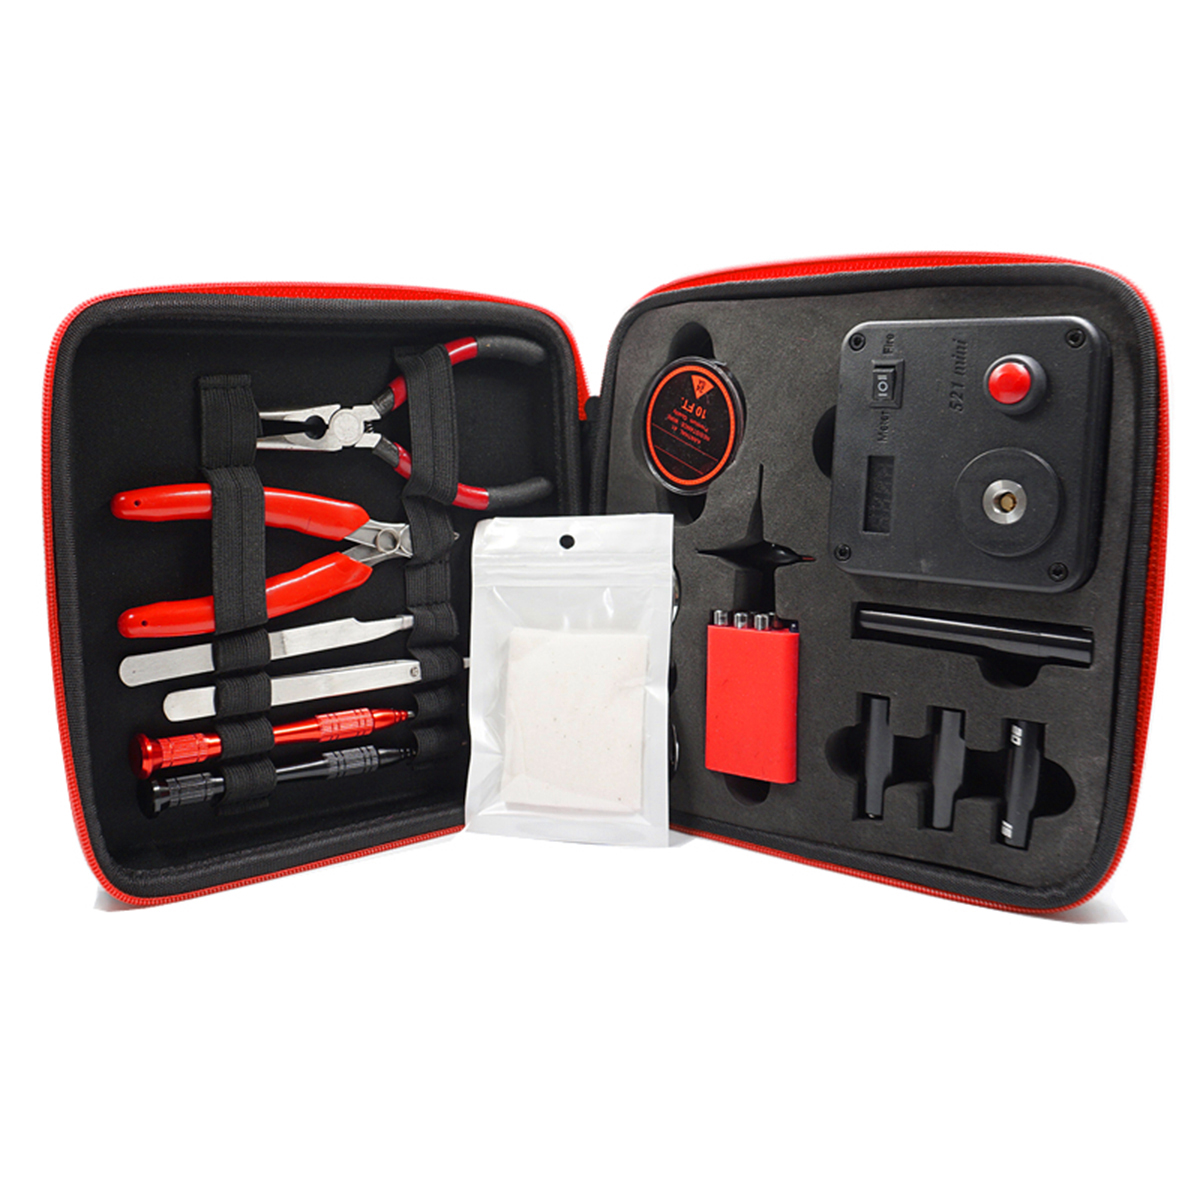 Brand New Update Coil Master V3 DIY Kit All-in-One CoilMaster V3+ Electronic Cigarette RDA Atomizer coil tool bag Accessories original geekvape 521 master kit v3 all in one kit with the most functional tools and accessories e cig vape 521 master kit v3